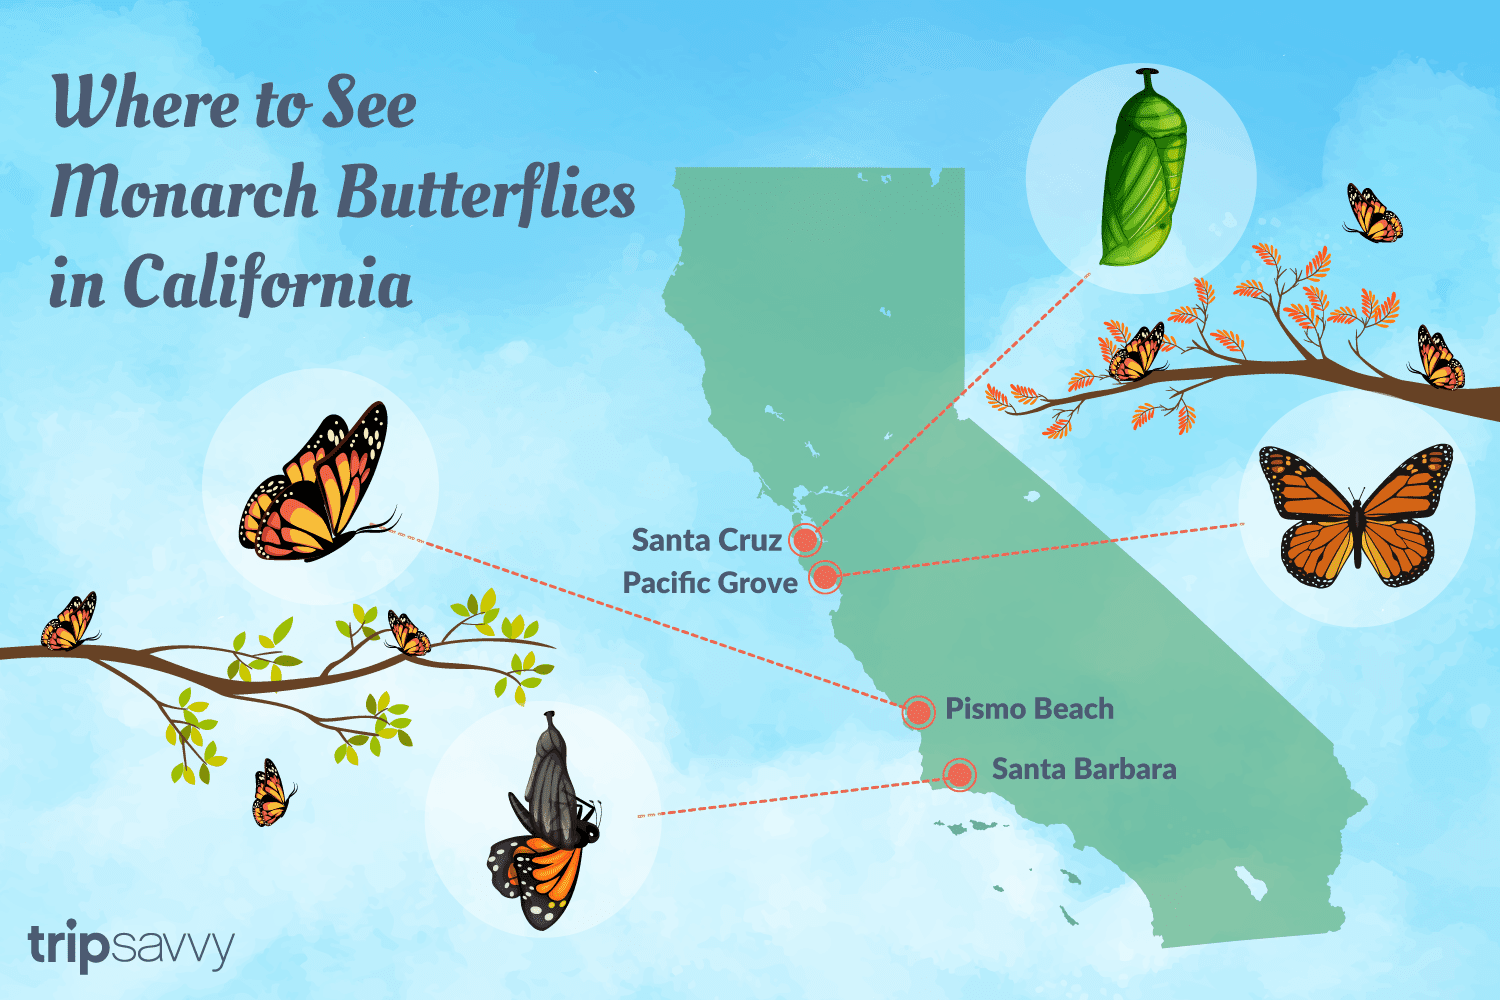 Where to See the Monarch Butterflies in California